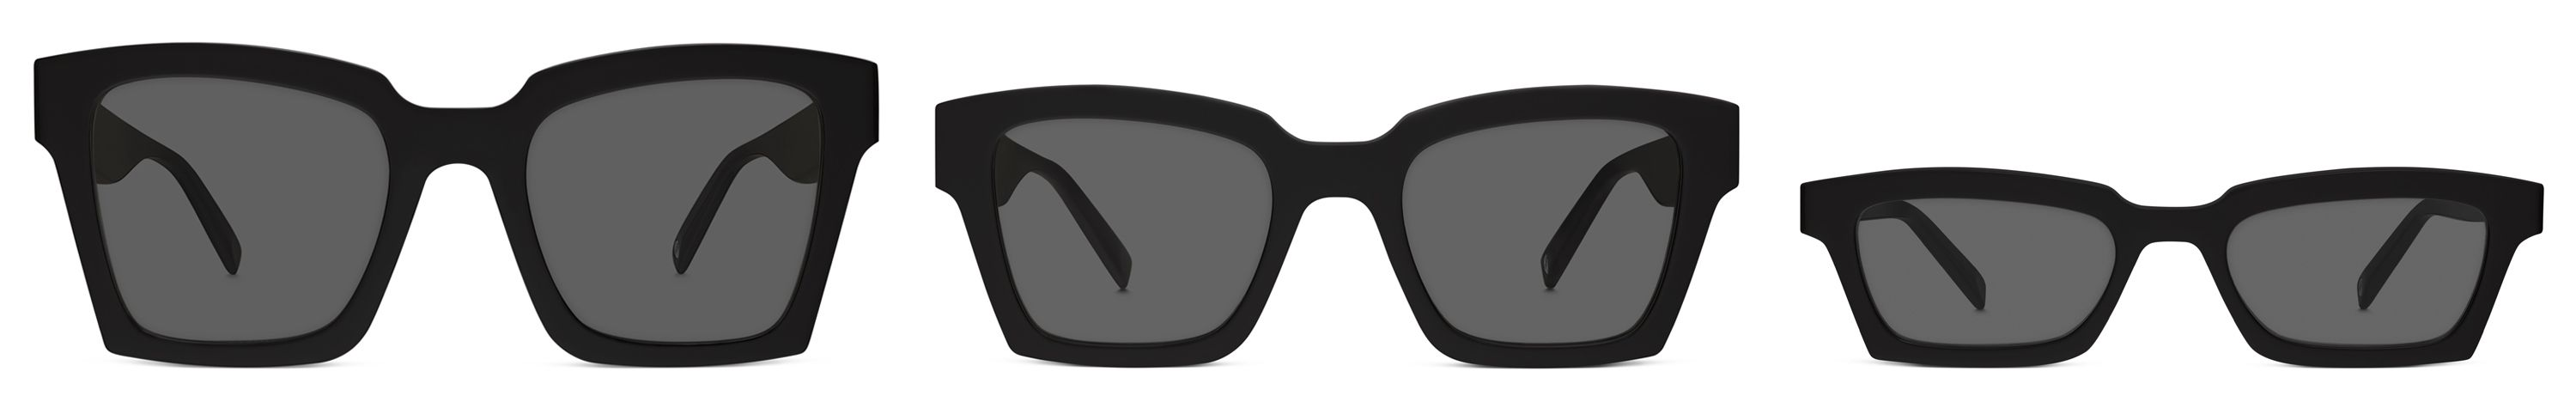 Off-White x Warby Parker sunglasses  / Courtesy Warby Parker